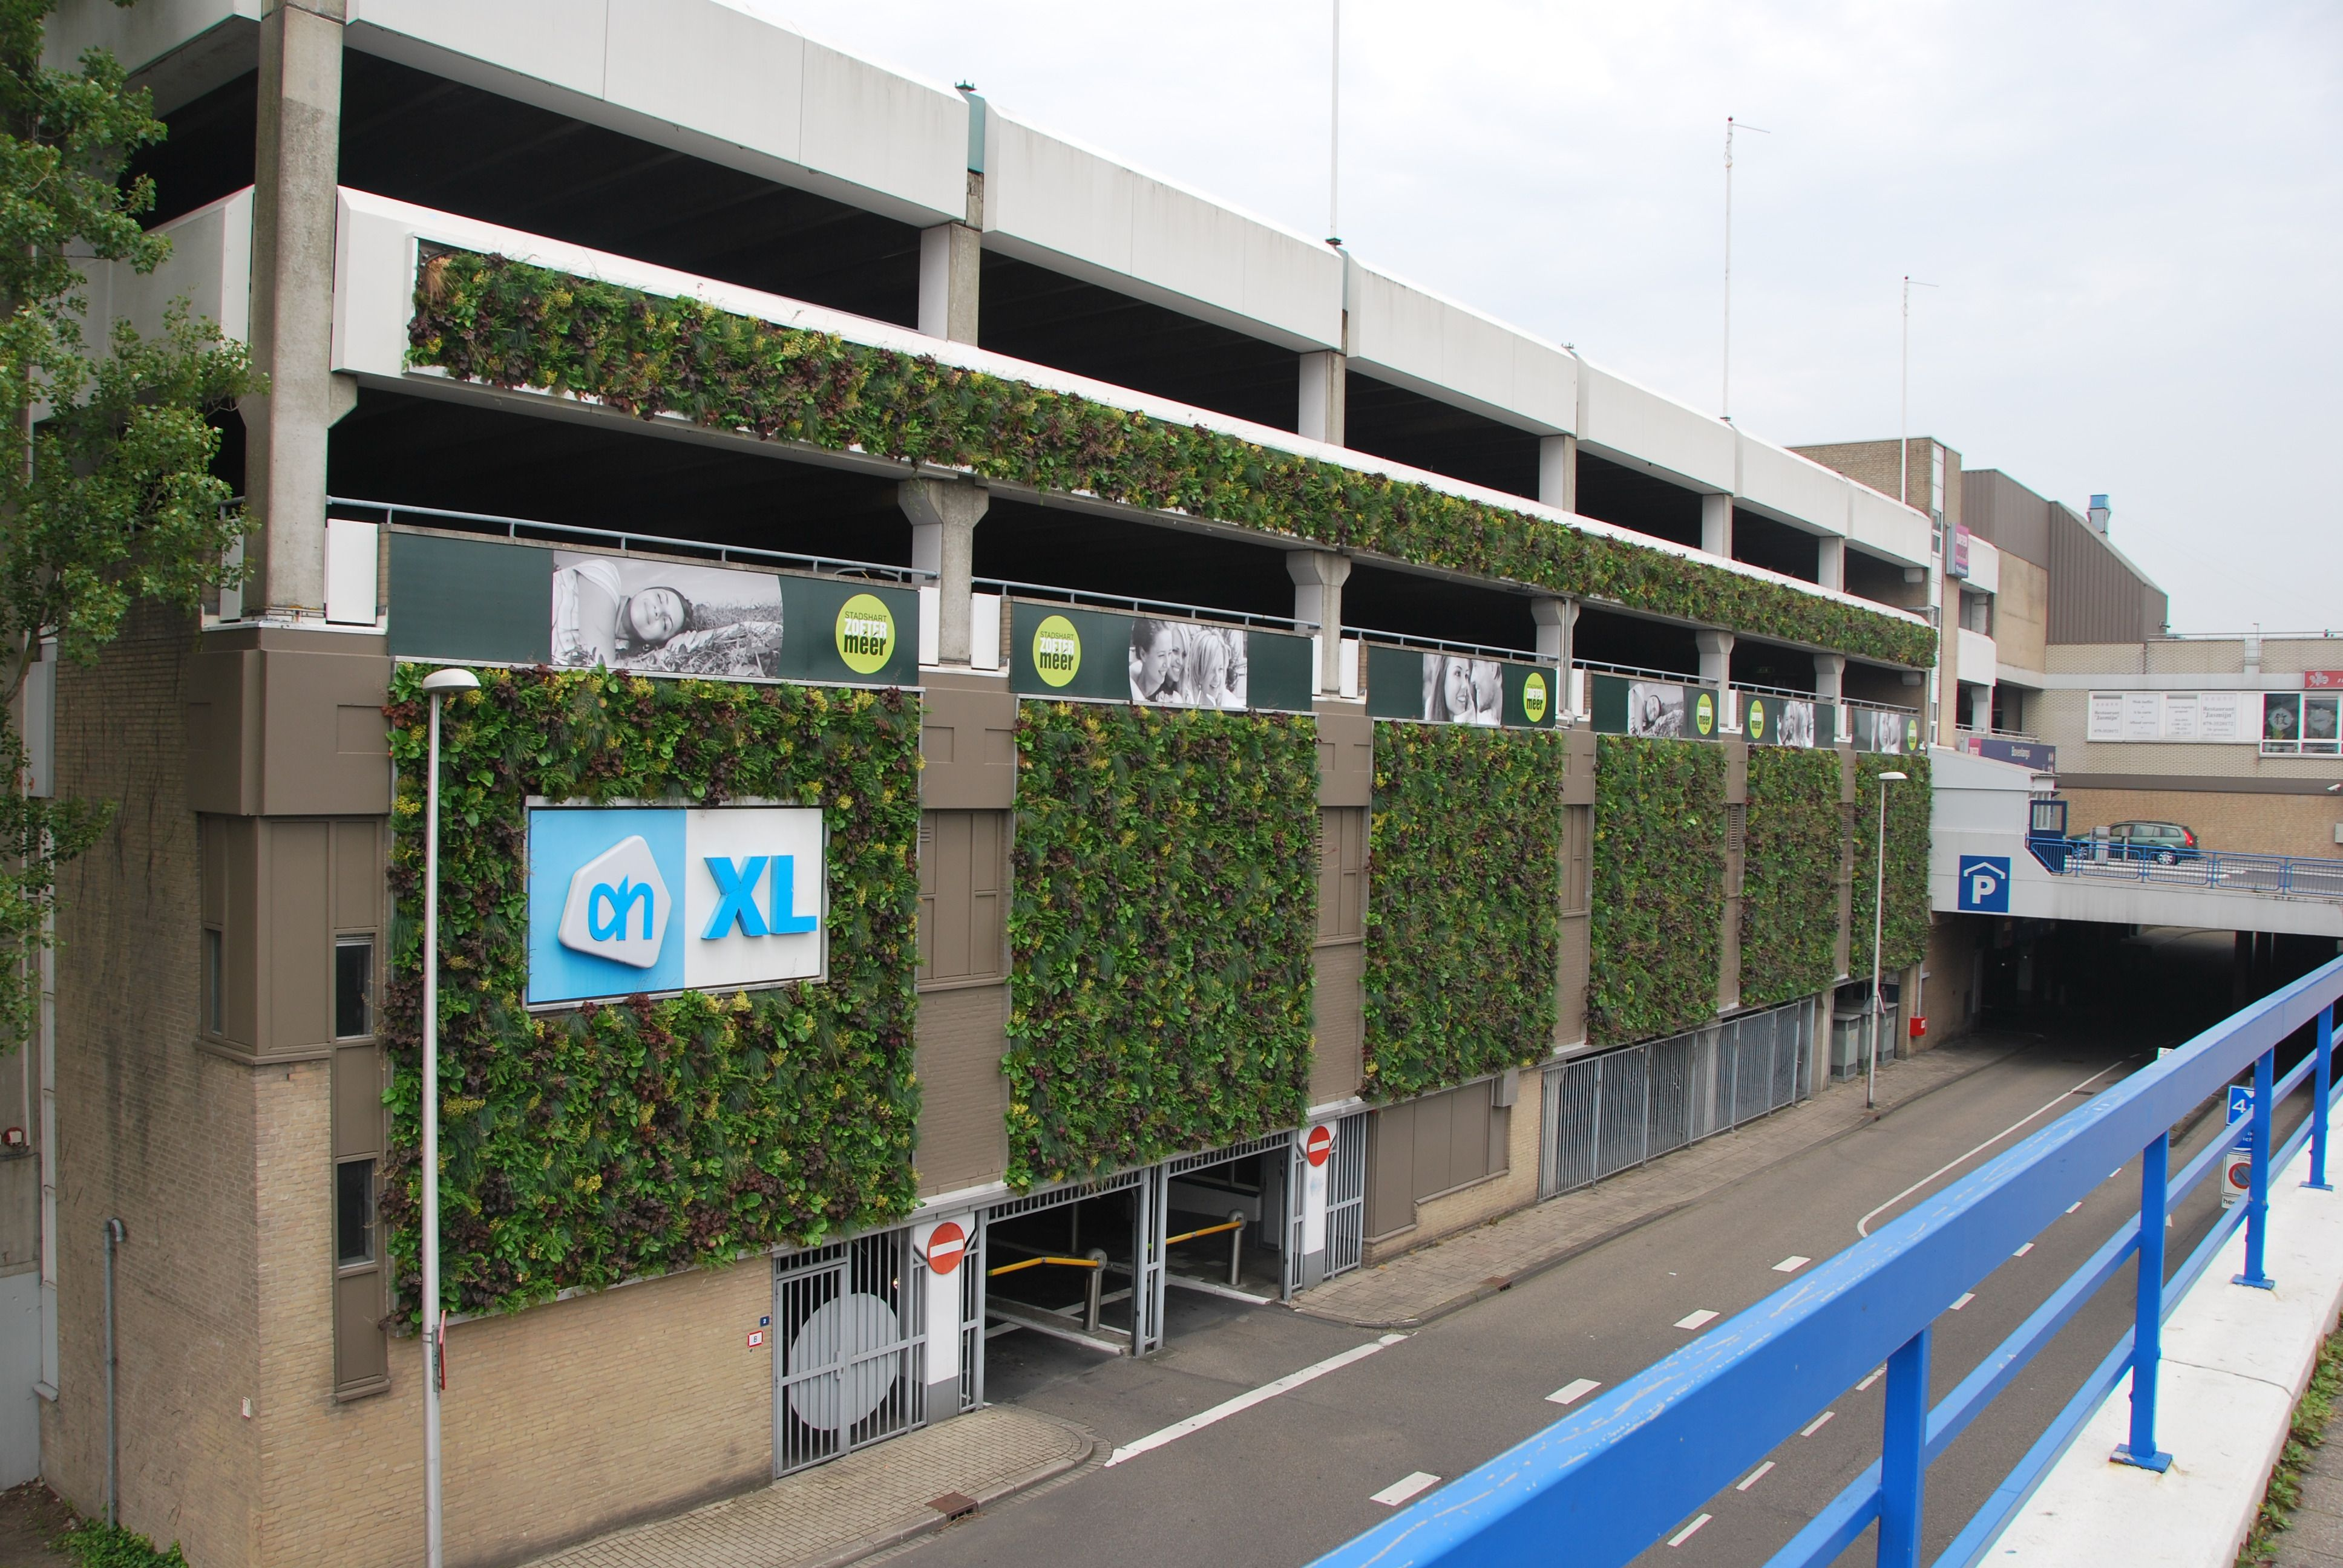 parking garage ivy wall - Google Search